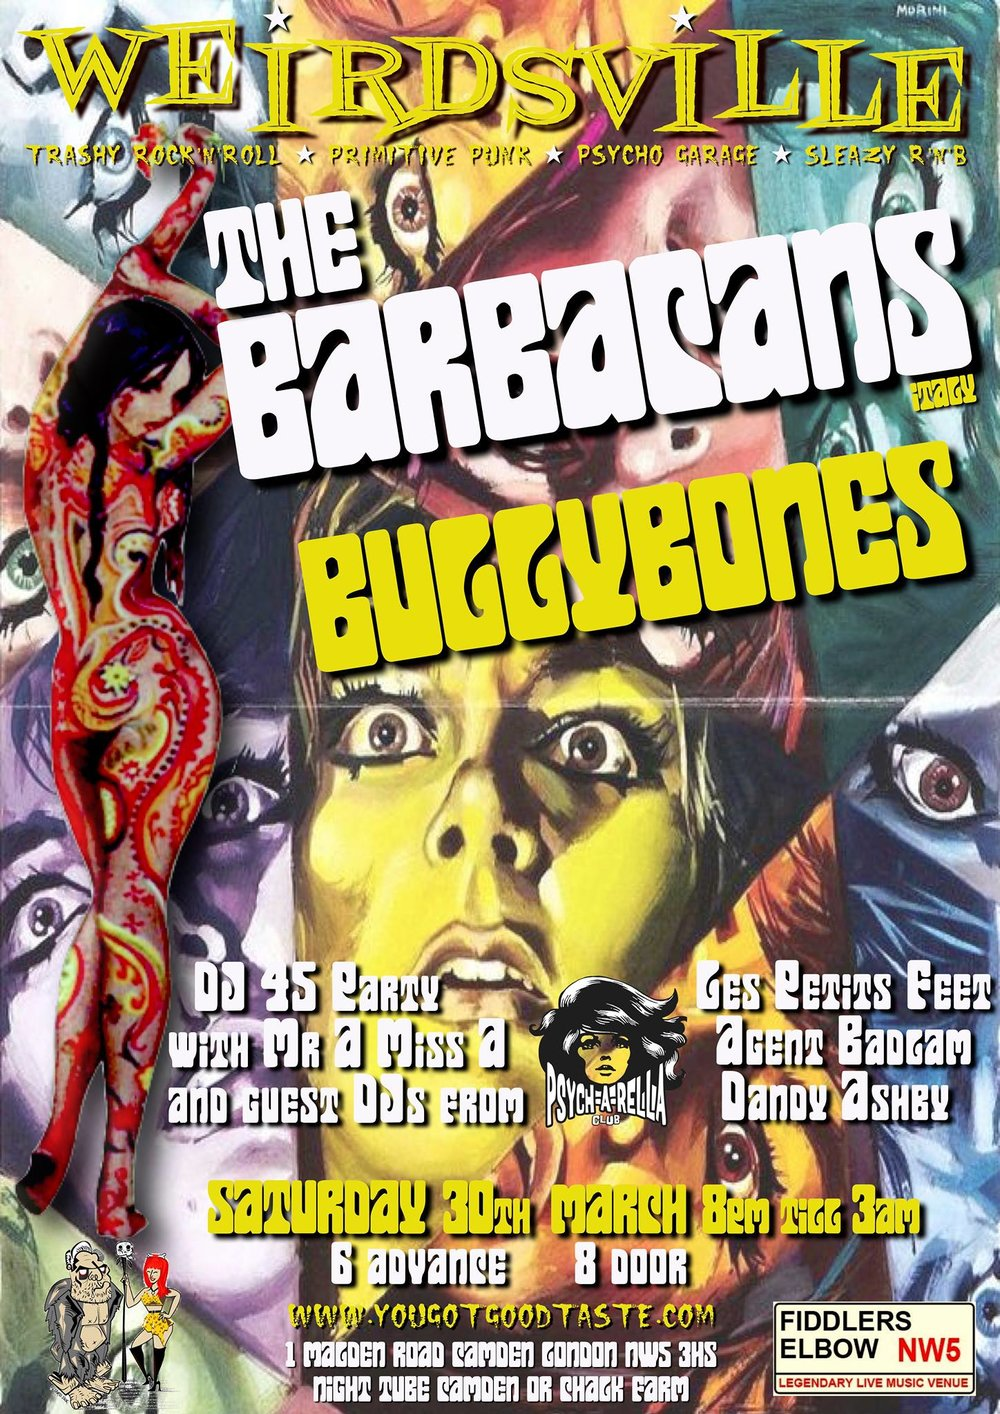 Weirdsville-The Barbacans, Bully Bones, guest DJs Psycharella at The Fiddler's Elbow promotional image